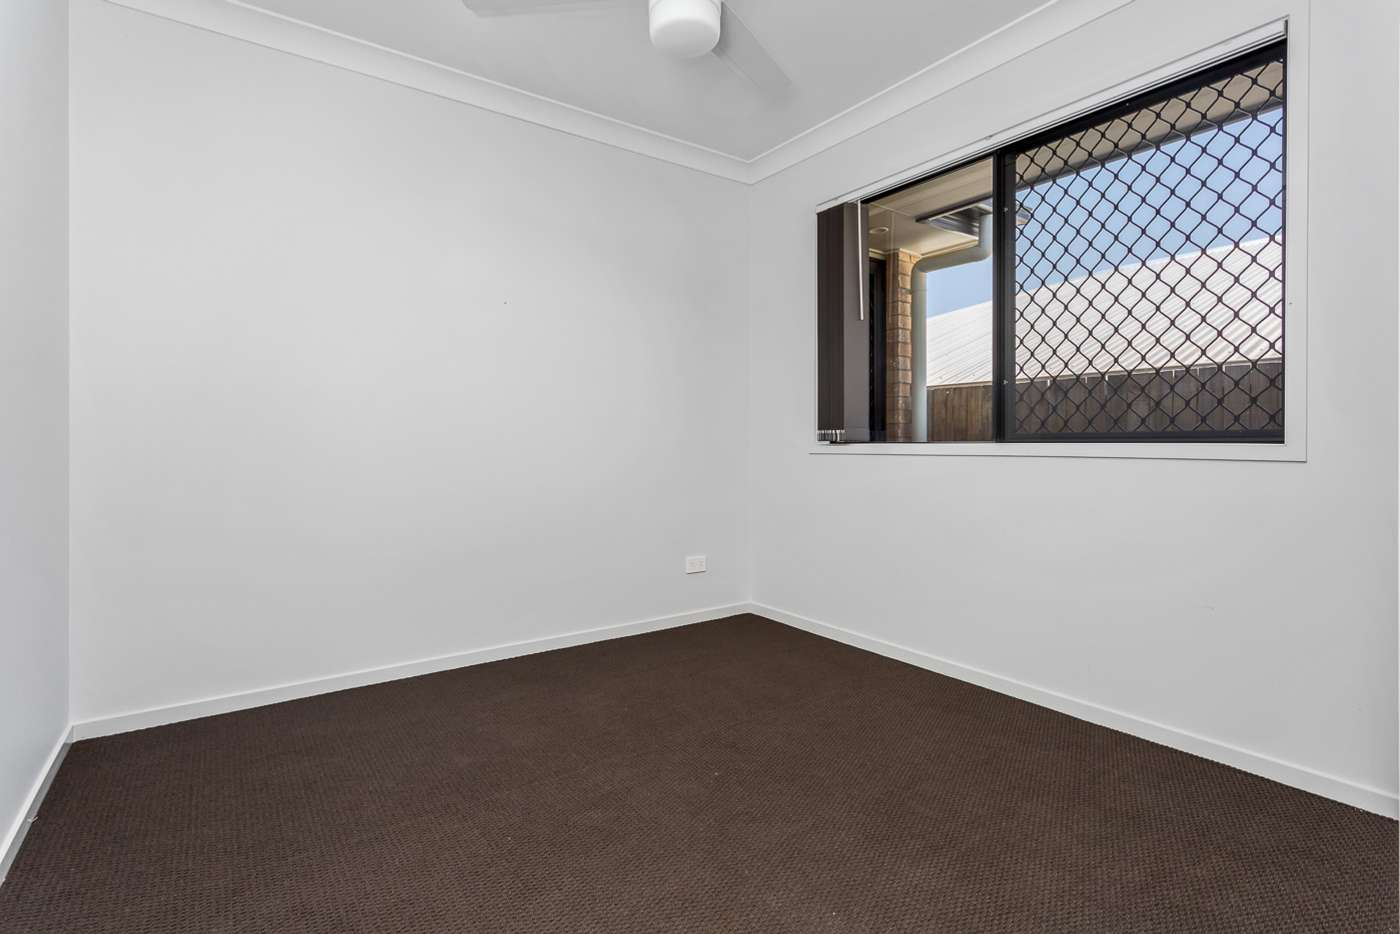 Seventh view of Homely house listing, 10 Chalk St, Yarrabilba QLD 4207